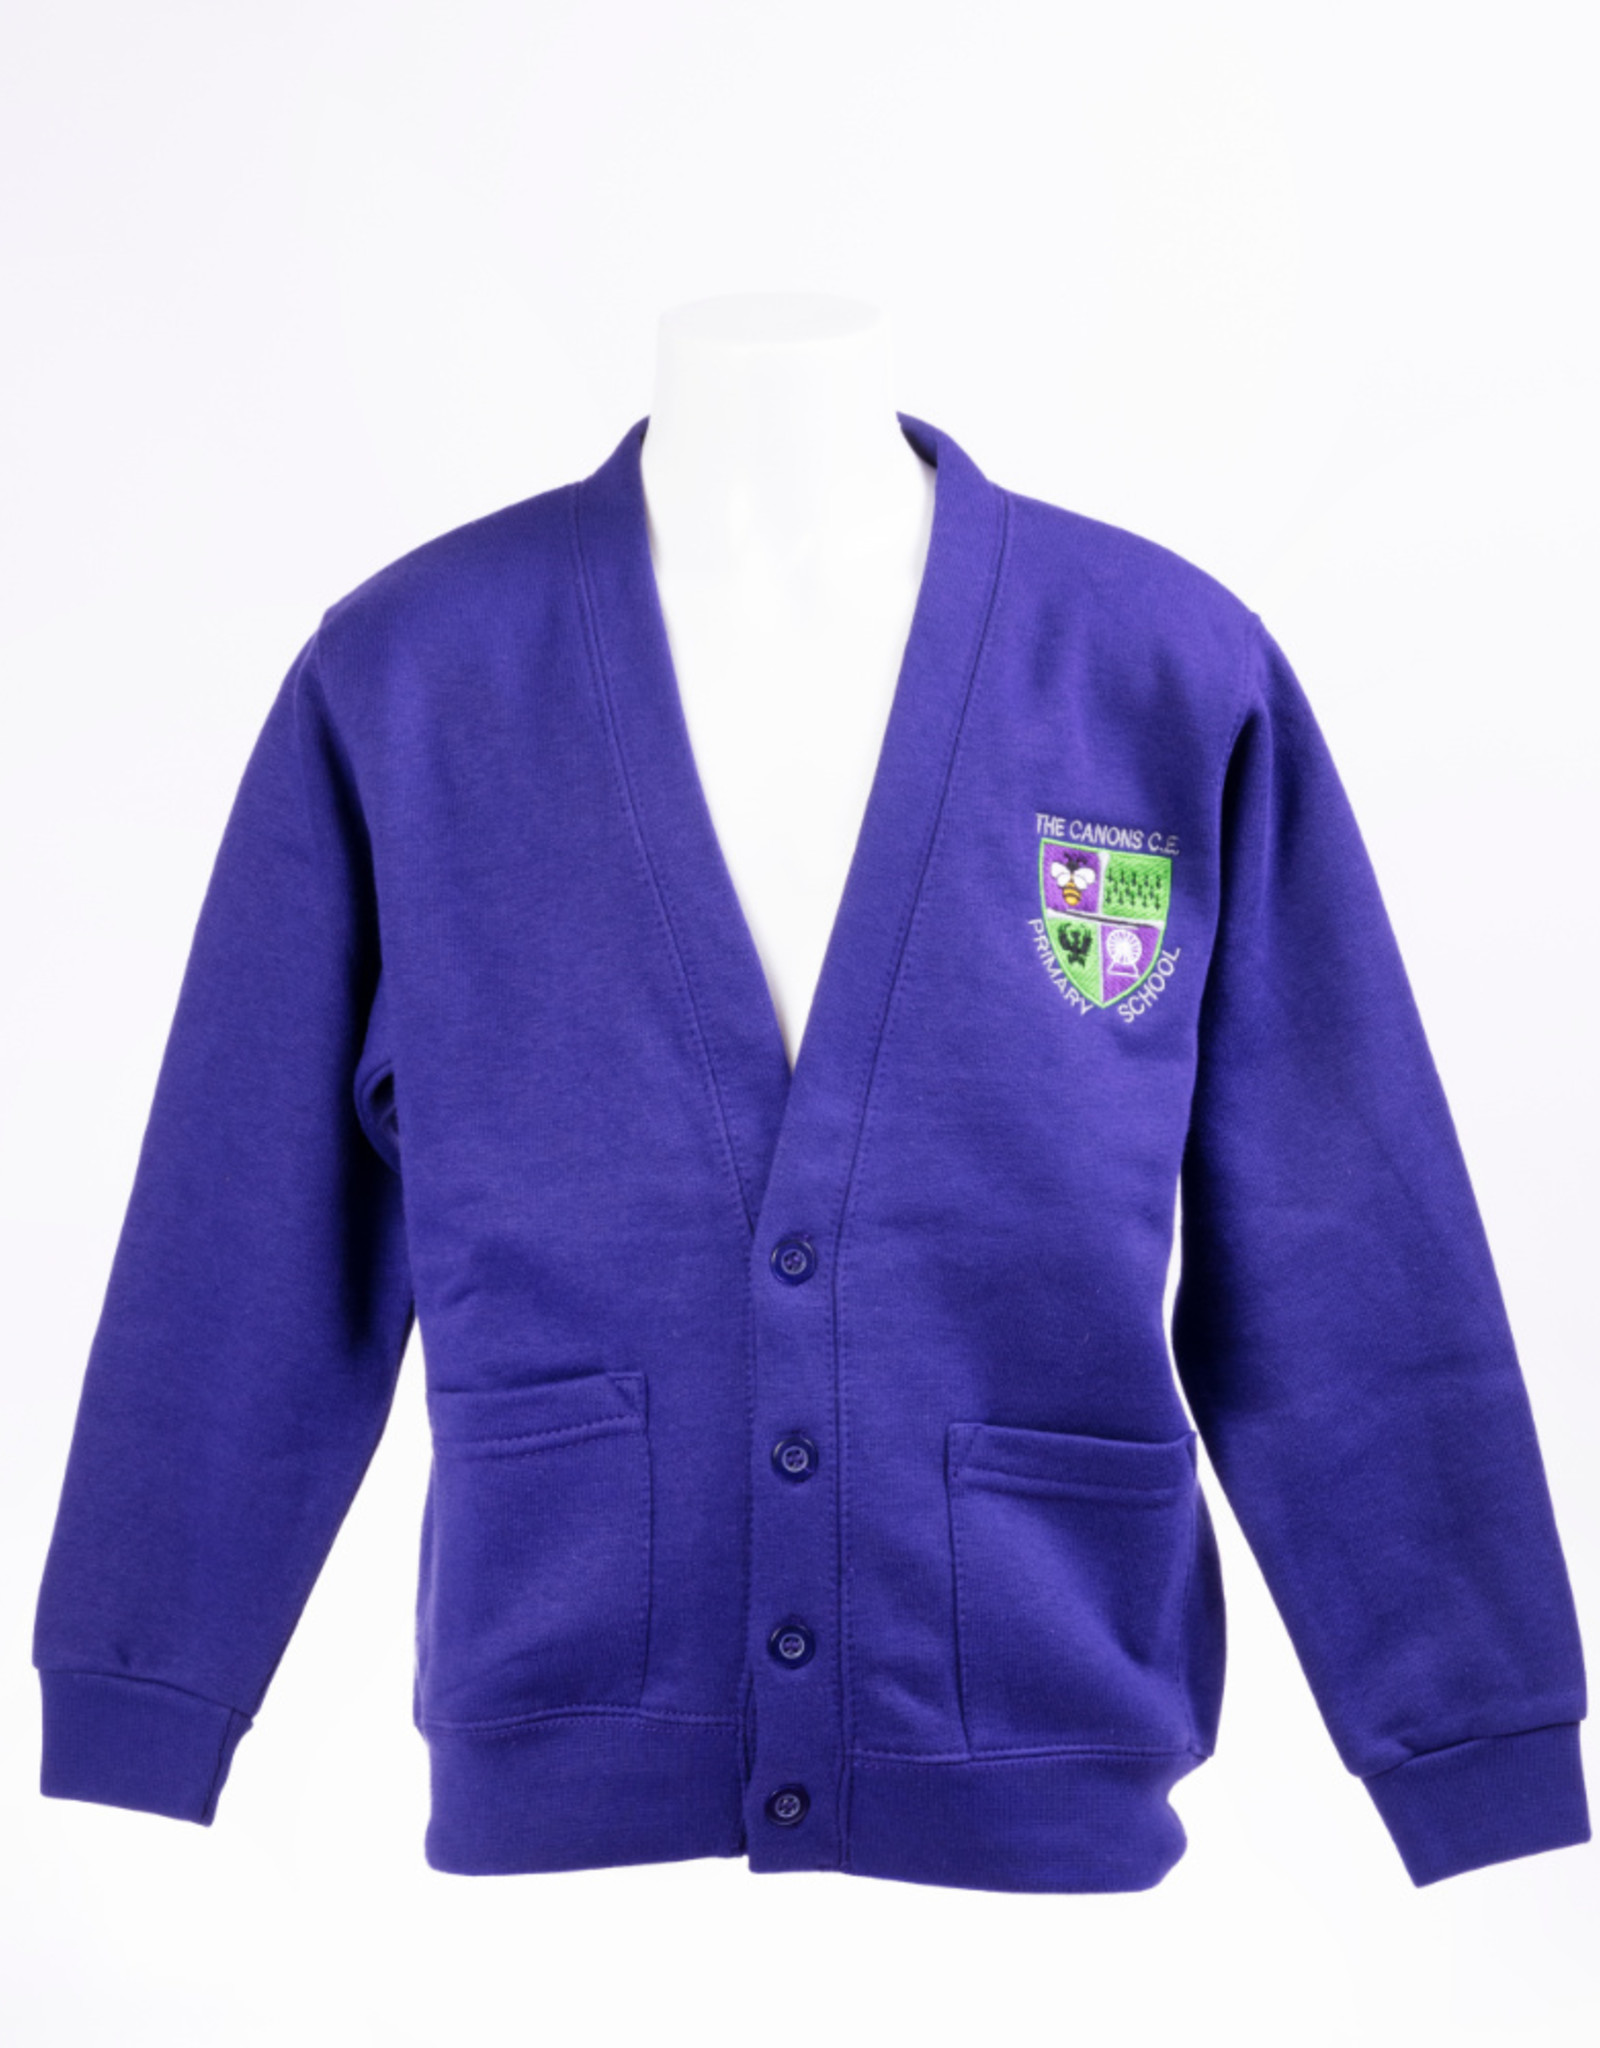 Cardigan Adult Size - The Canons CE Primary School Unisex